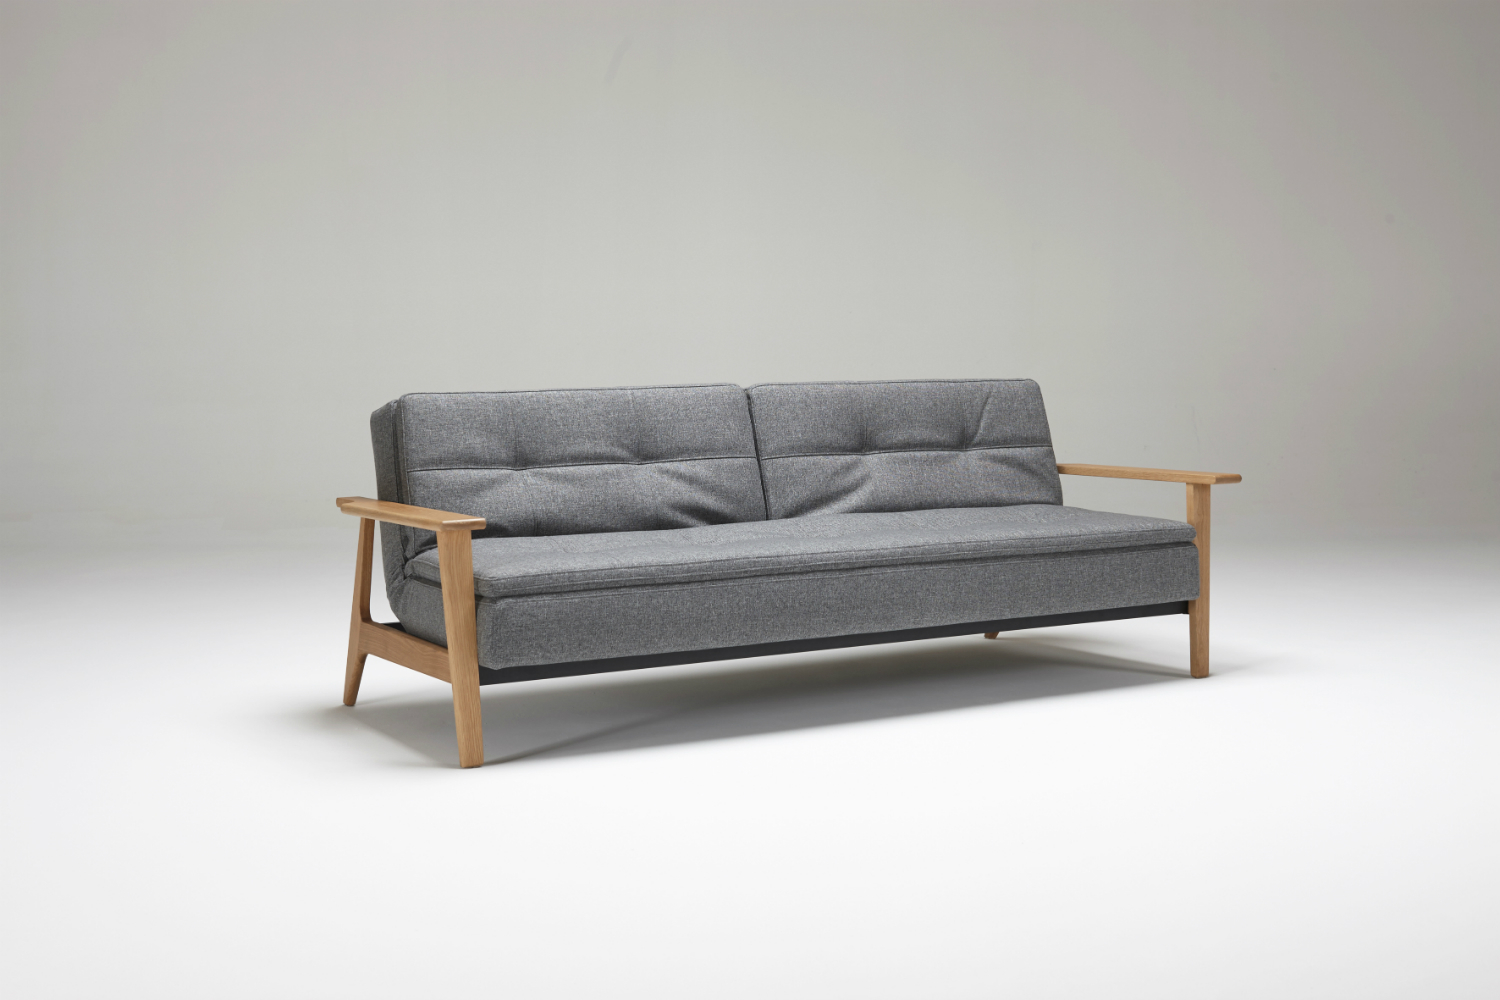 Au sleeper sofa Home furniture melbourne australia